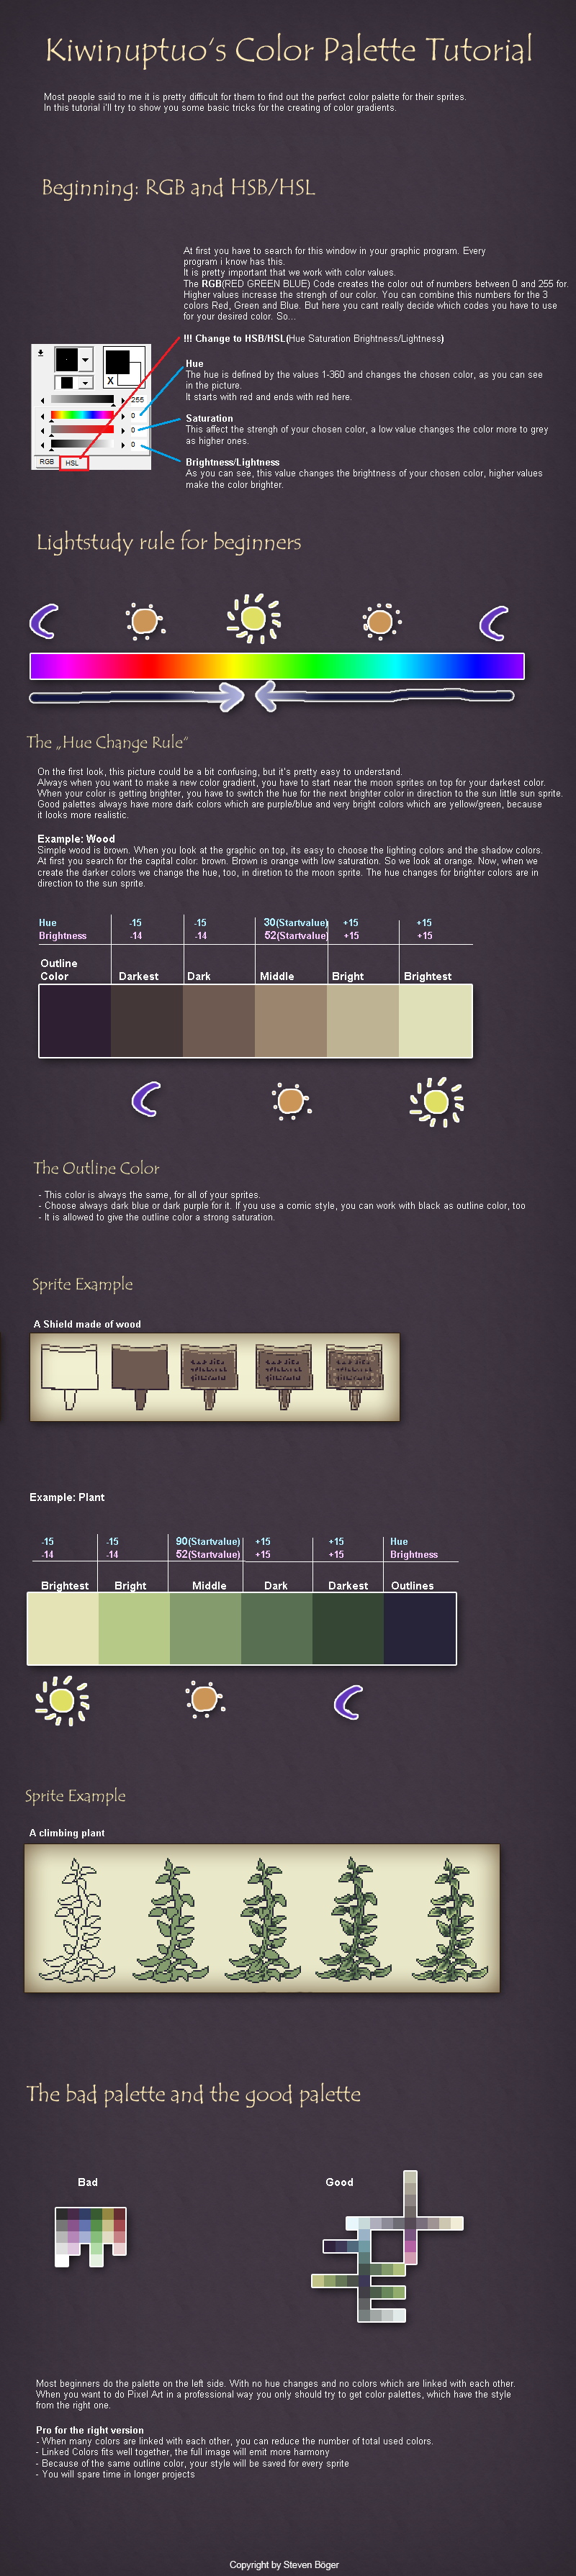 Game color theory - A Great Guide To Selecting Colors For Your Pixel Art Or Art In General